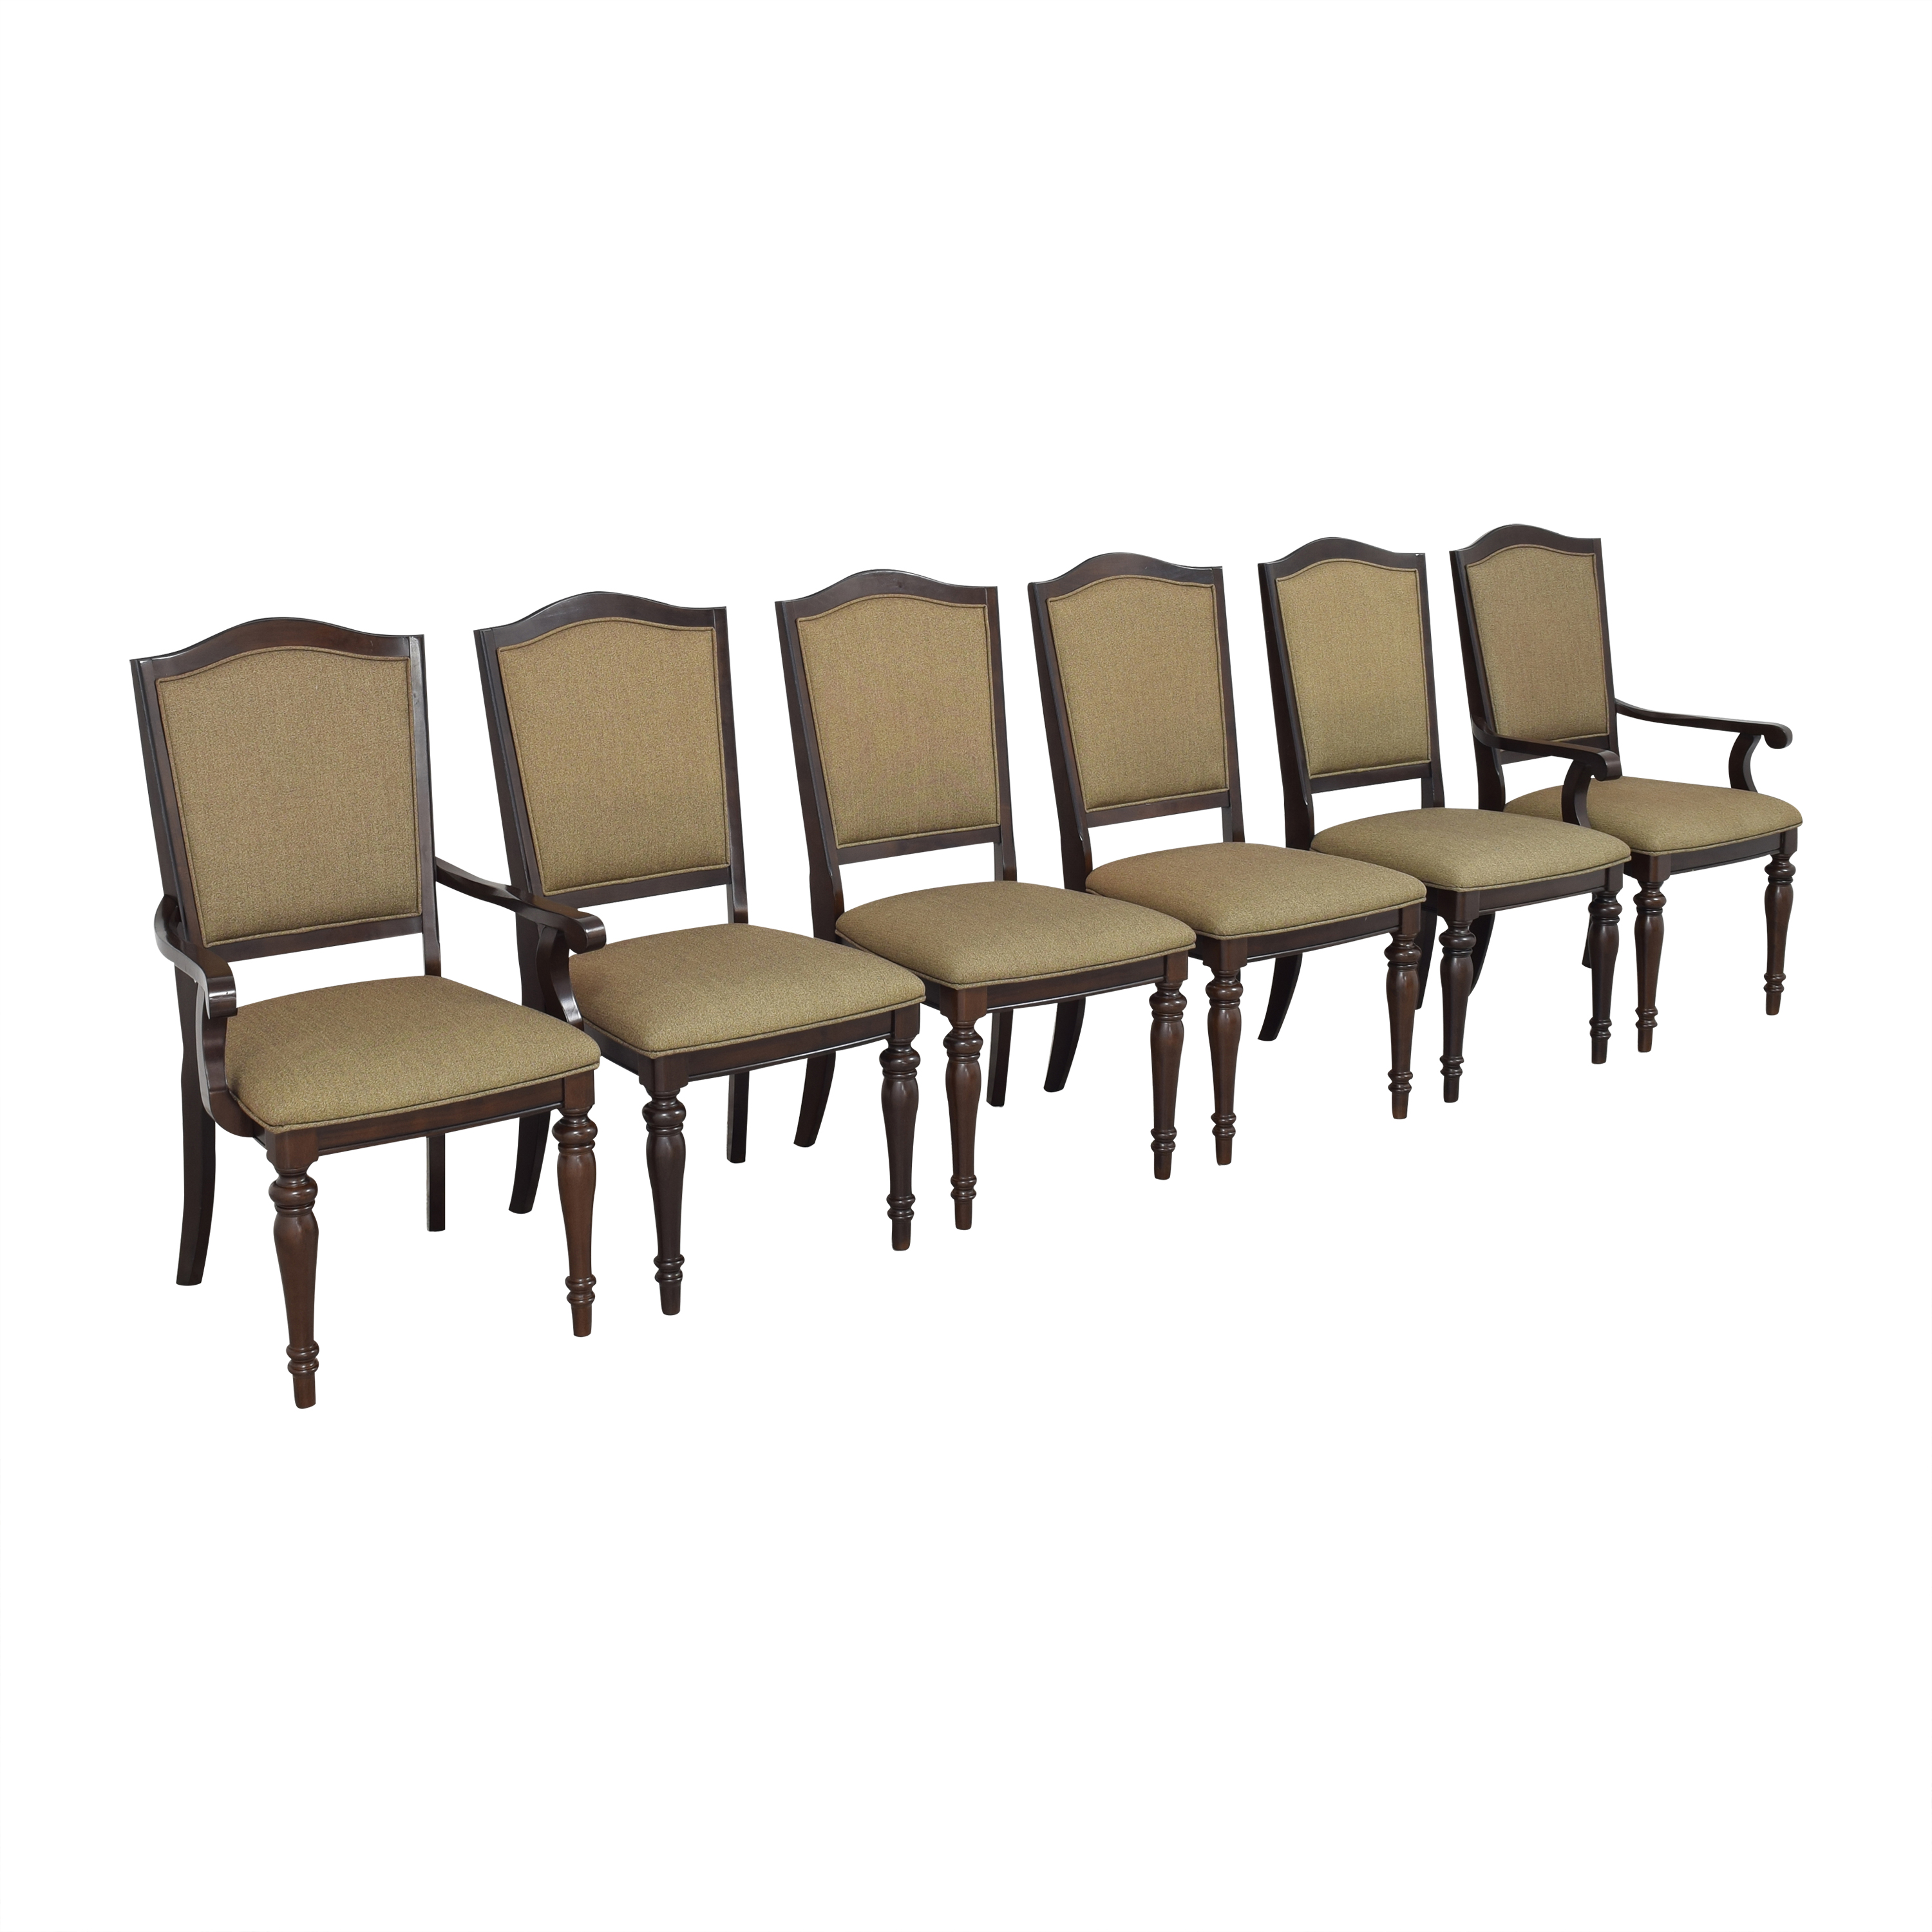 buy Raymour & Flanigan Bay City Dining Chairs Raymour & Flanigan Dining Chairs